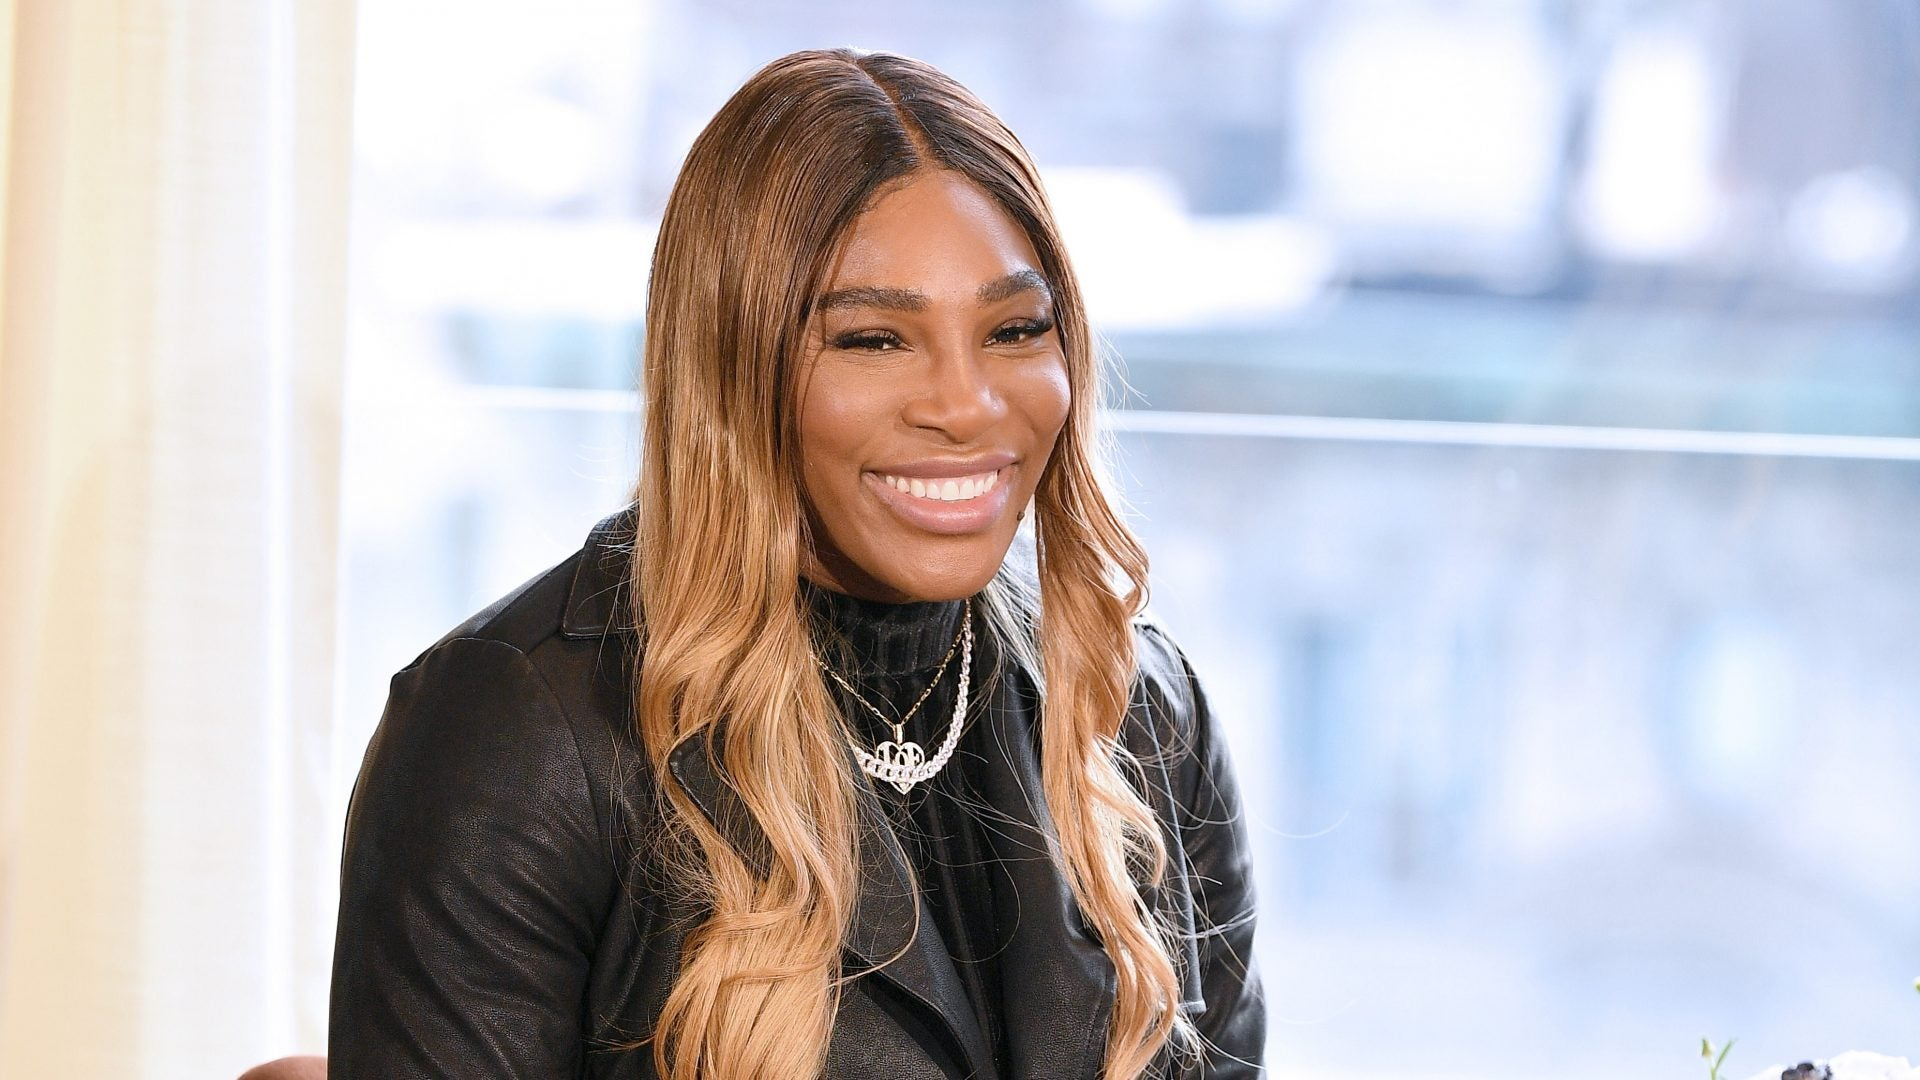 New Serena Williams Partnership Is Advancing Gender Equality